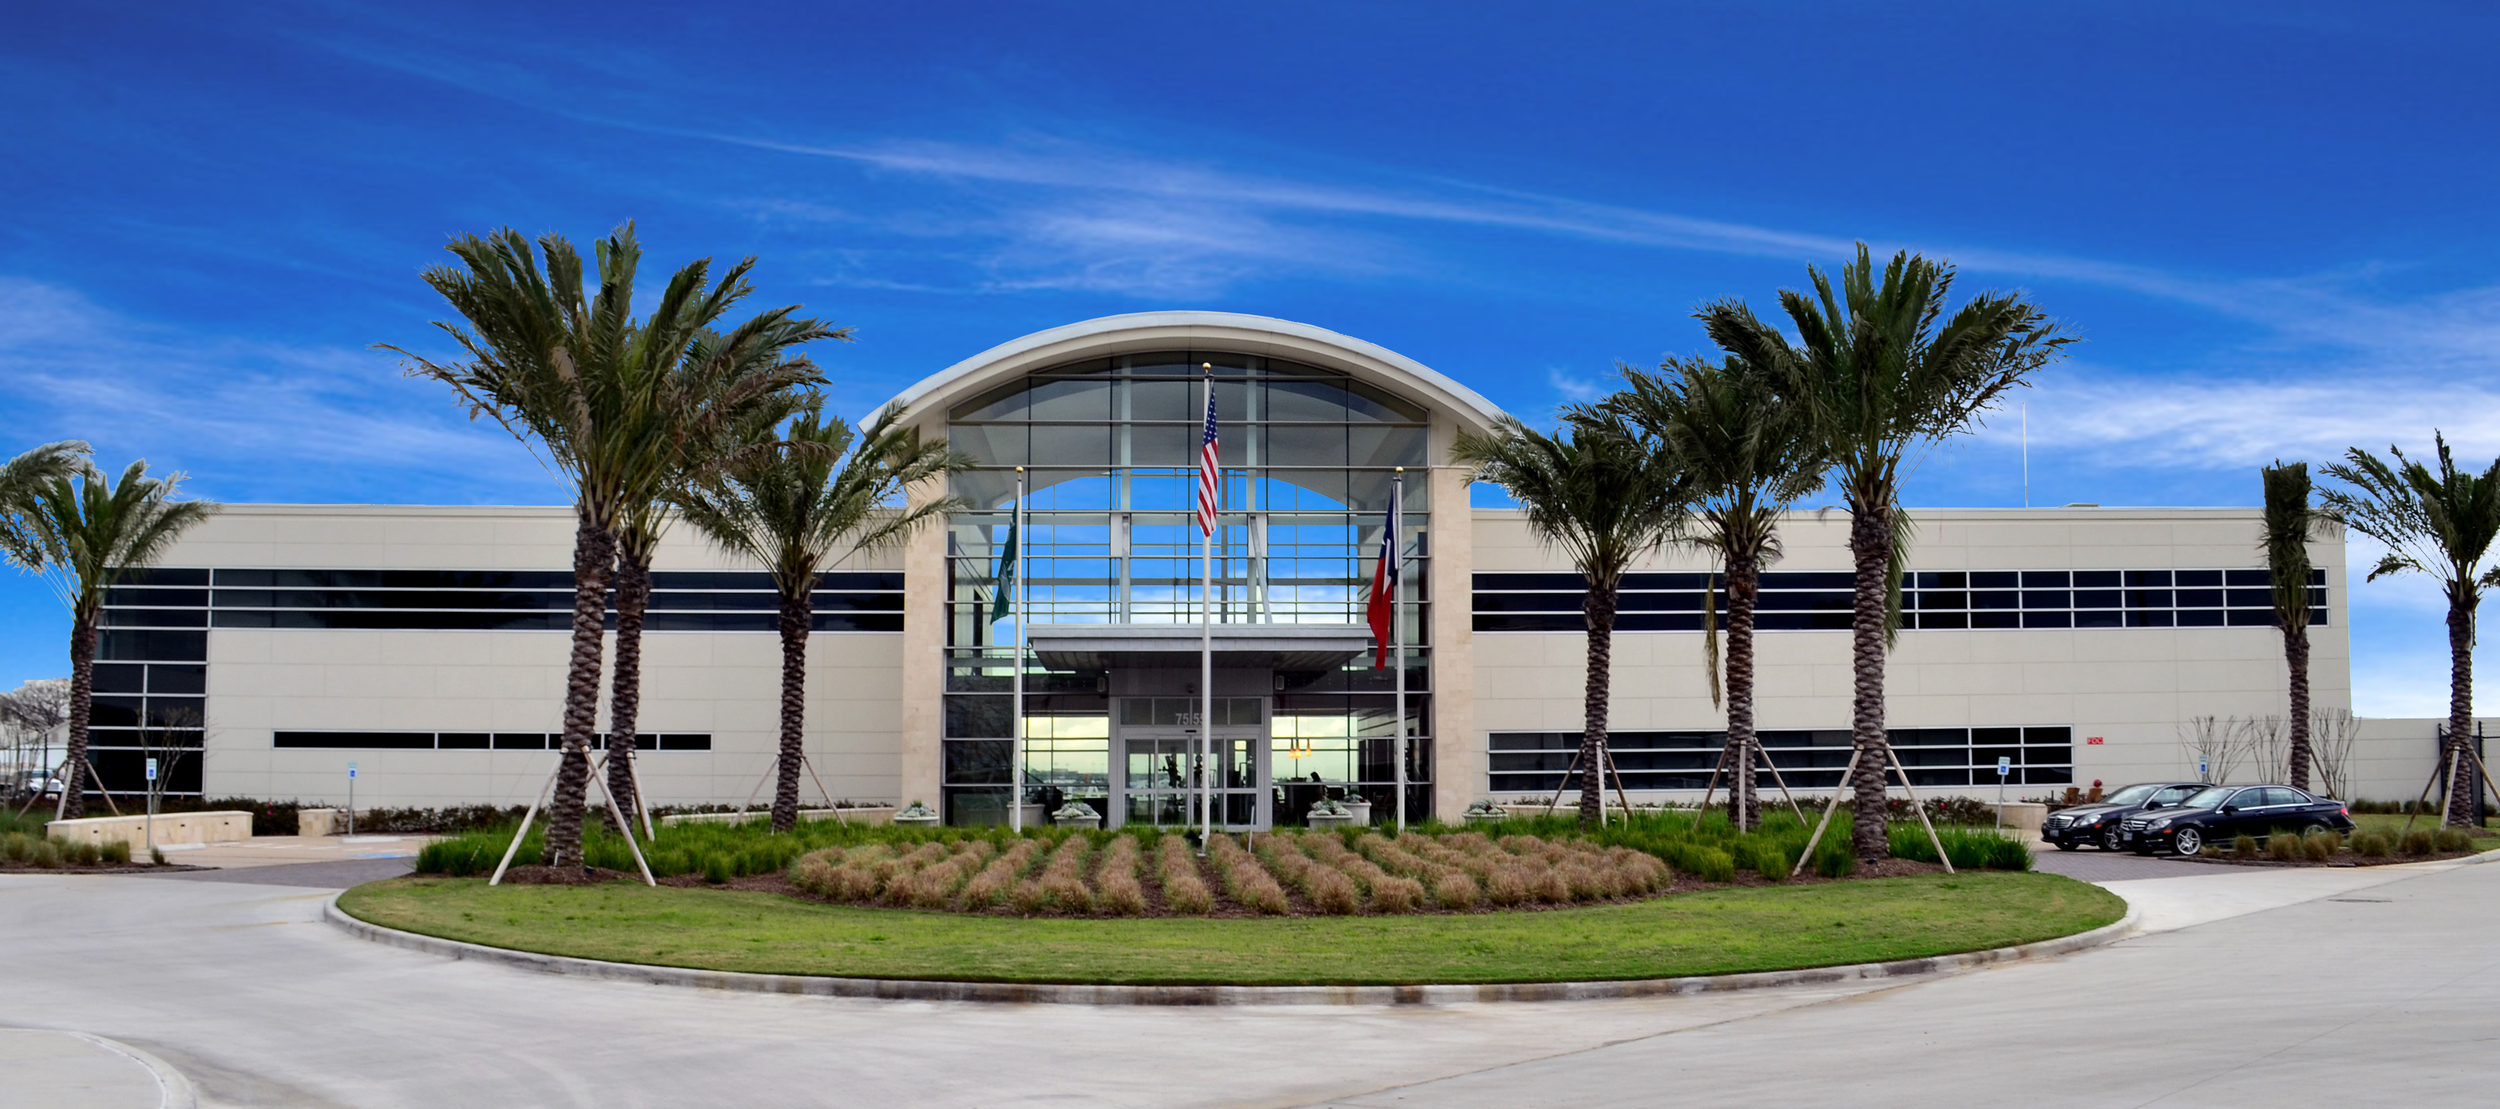 Million Air Terminal. Project designed and managed by Oscar Valdez working at Haynes Whaley Associates